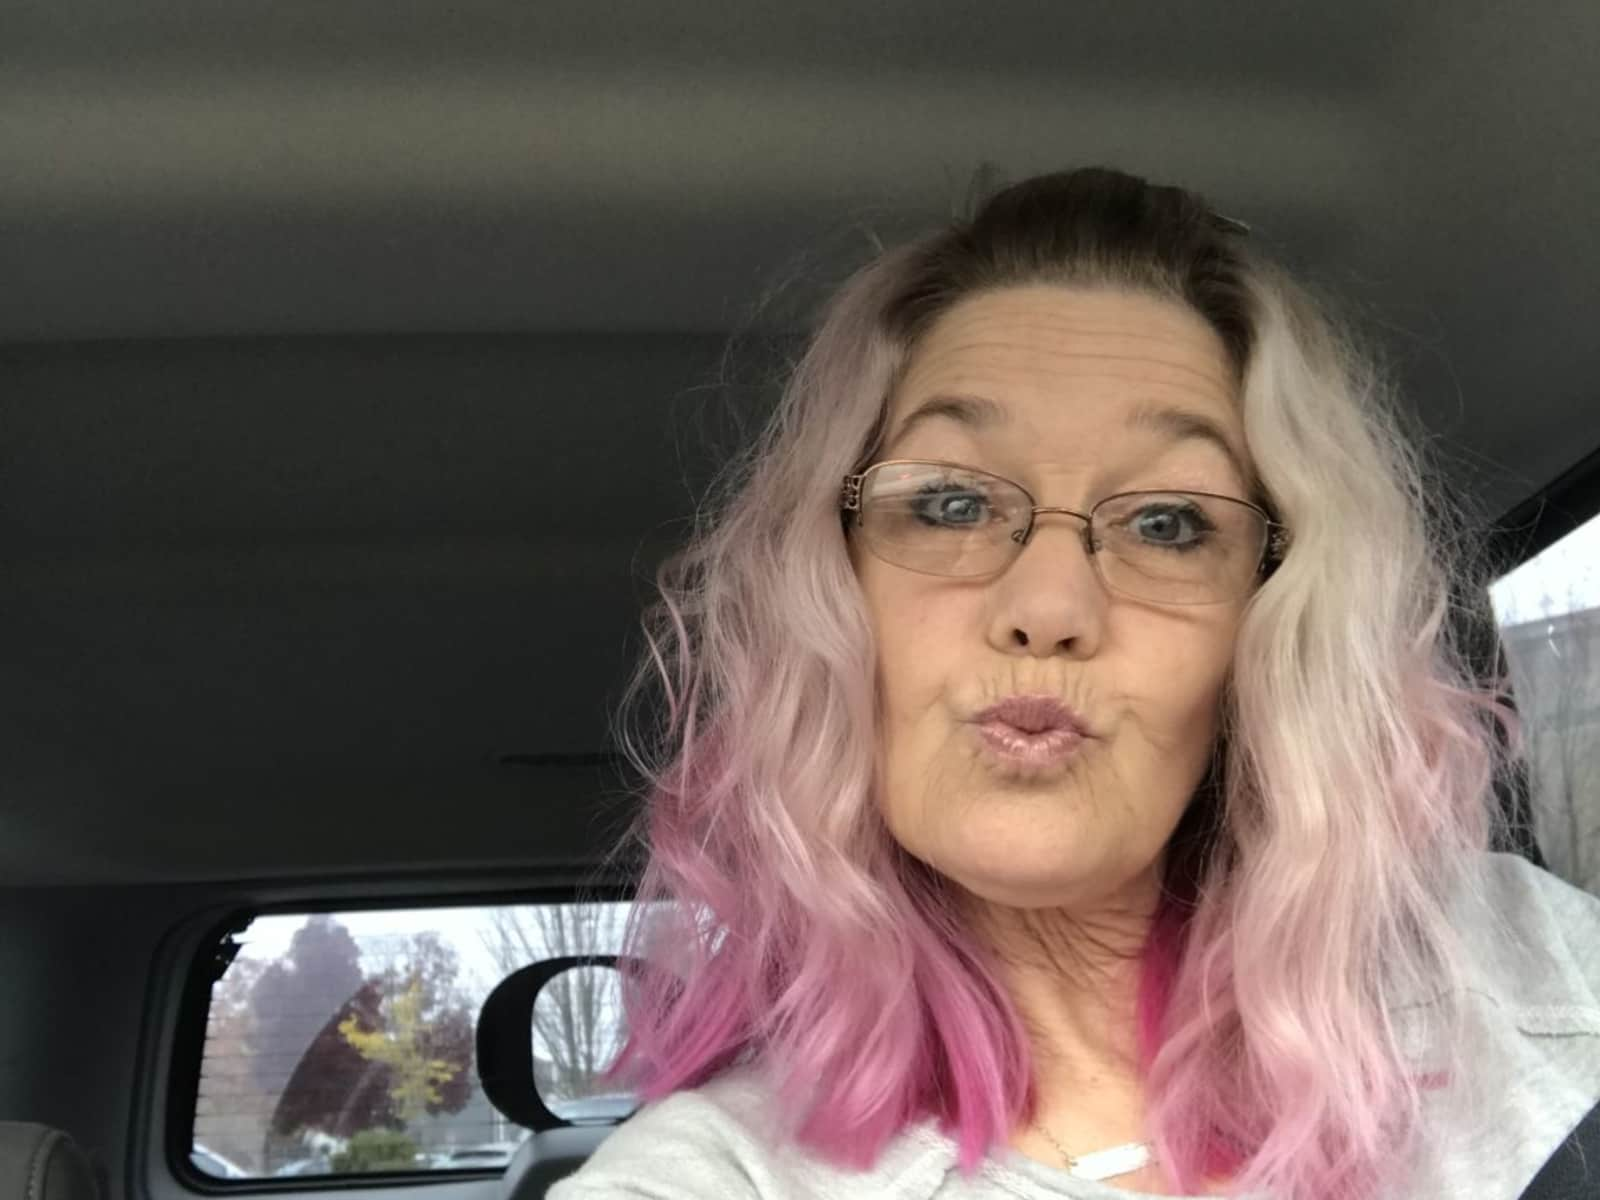 Traci from Grants Pass, Oregon, United States